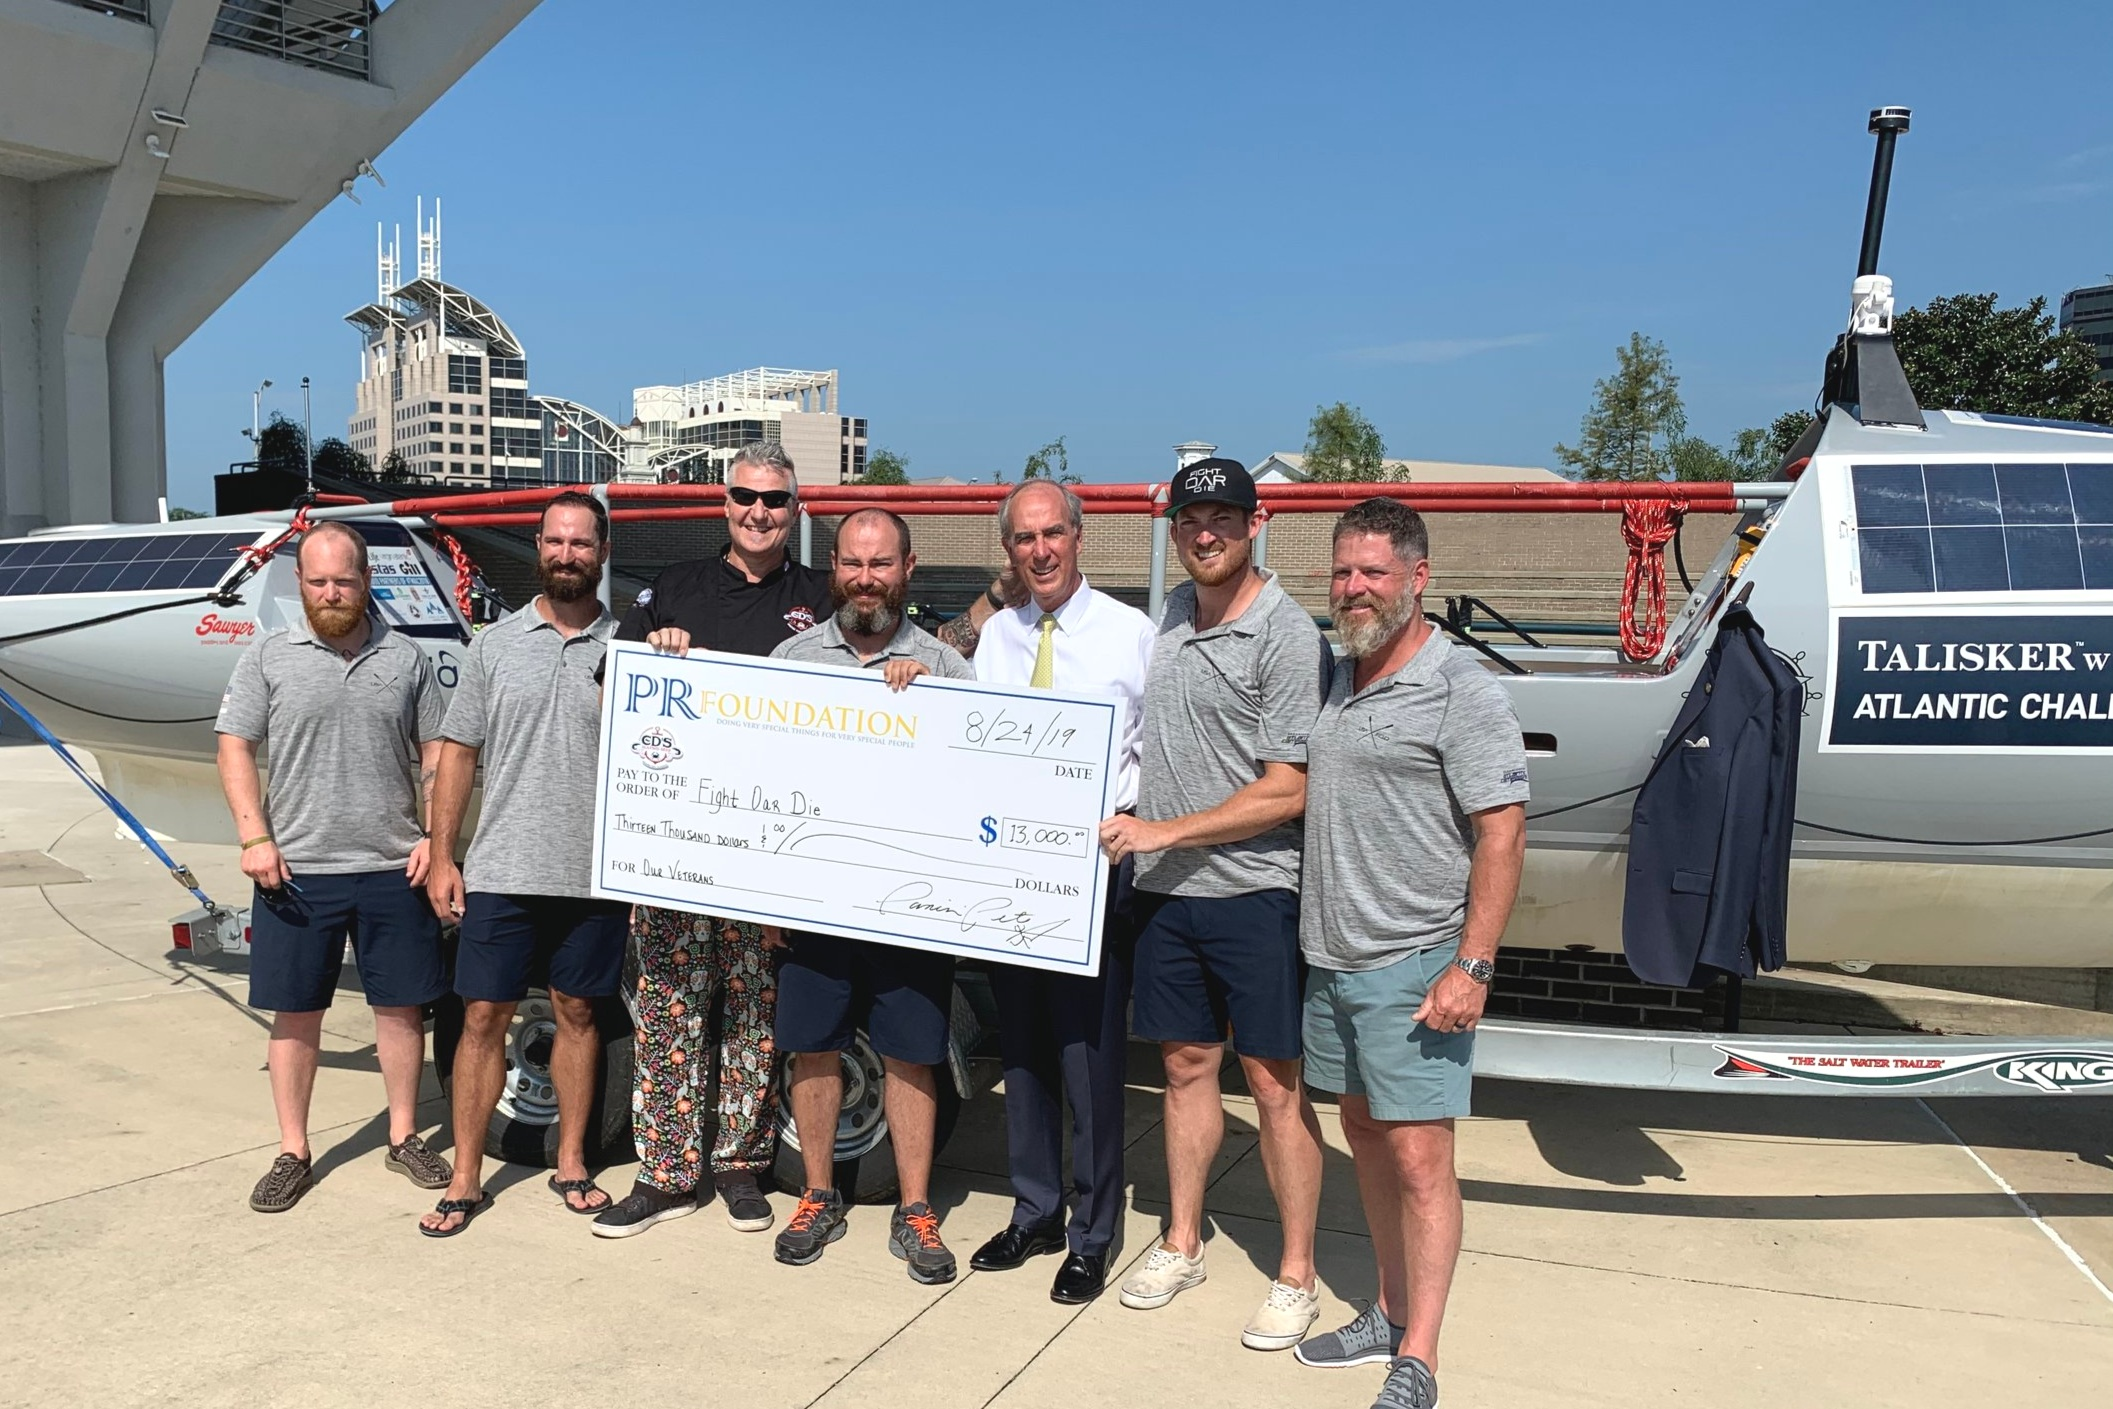 2019 PR Foundation co founder Panini Pete Blohme presenting a check for $13,000 to support the Fight Oar Die Military Veteran Team crossing the Atlantic in their boat Woobie in the Talisker Whiskey Challange .Fight Oar Die is made up of veterans from various Army backgrounds, ranging from Infantry Paratroopers, US Army Rangers and US Special Forces raising awareness of the issues veterans and their families face after they return home from combat deployment – things like Post-Traumatic Stress Disorder (PTSD), Traumatic Brain Injuries (TBI) and reintegration issues.